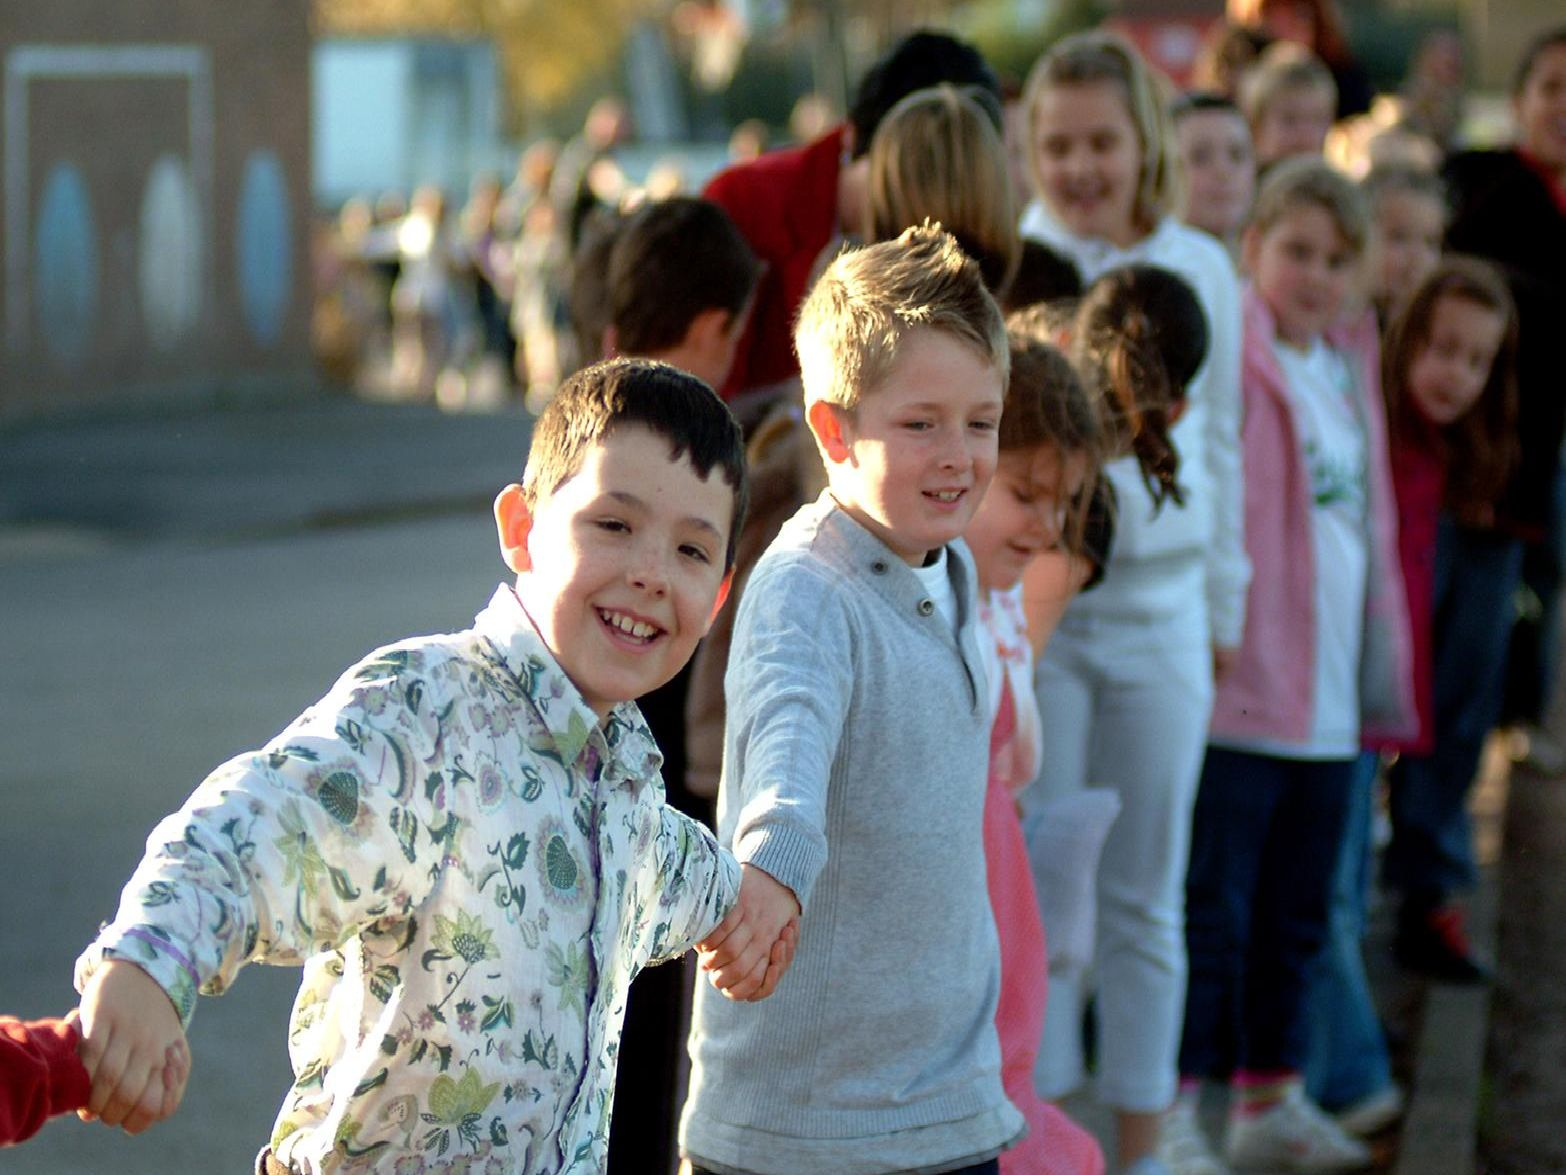 2009: Pupils from St Augustines Junior School in Worksop form a human chain around the school for anti bullying week. Were you part of the chain?